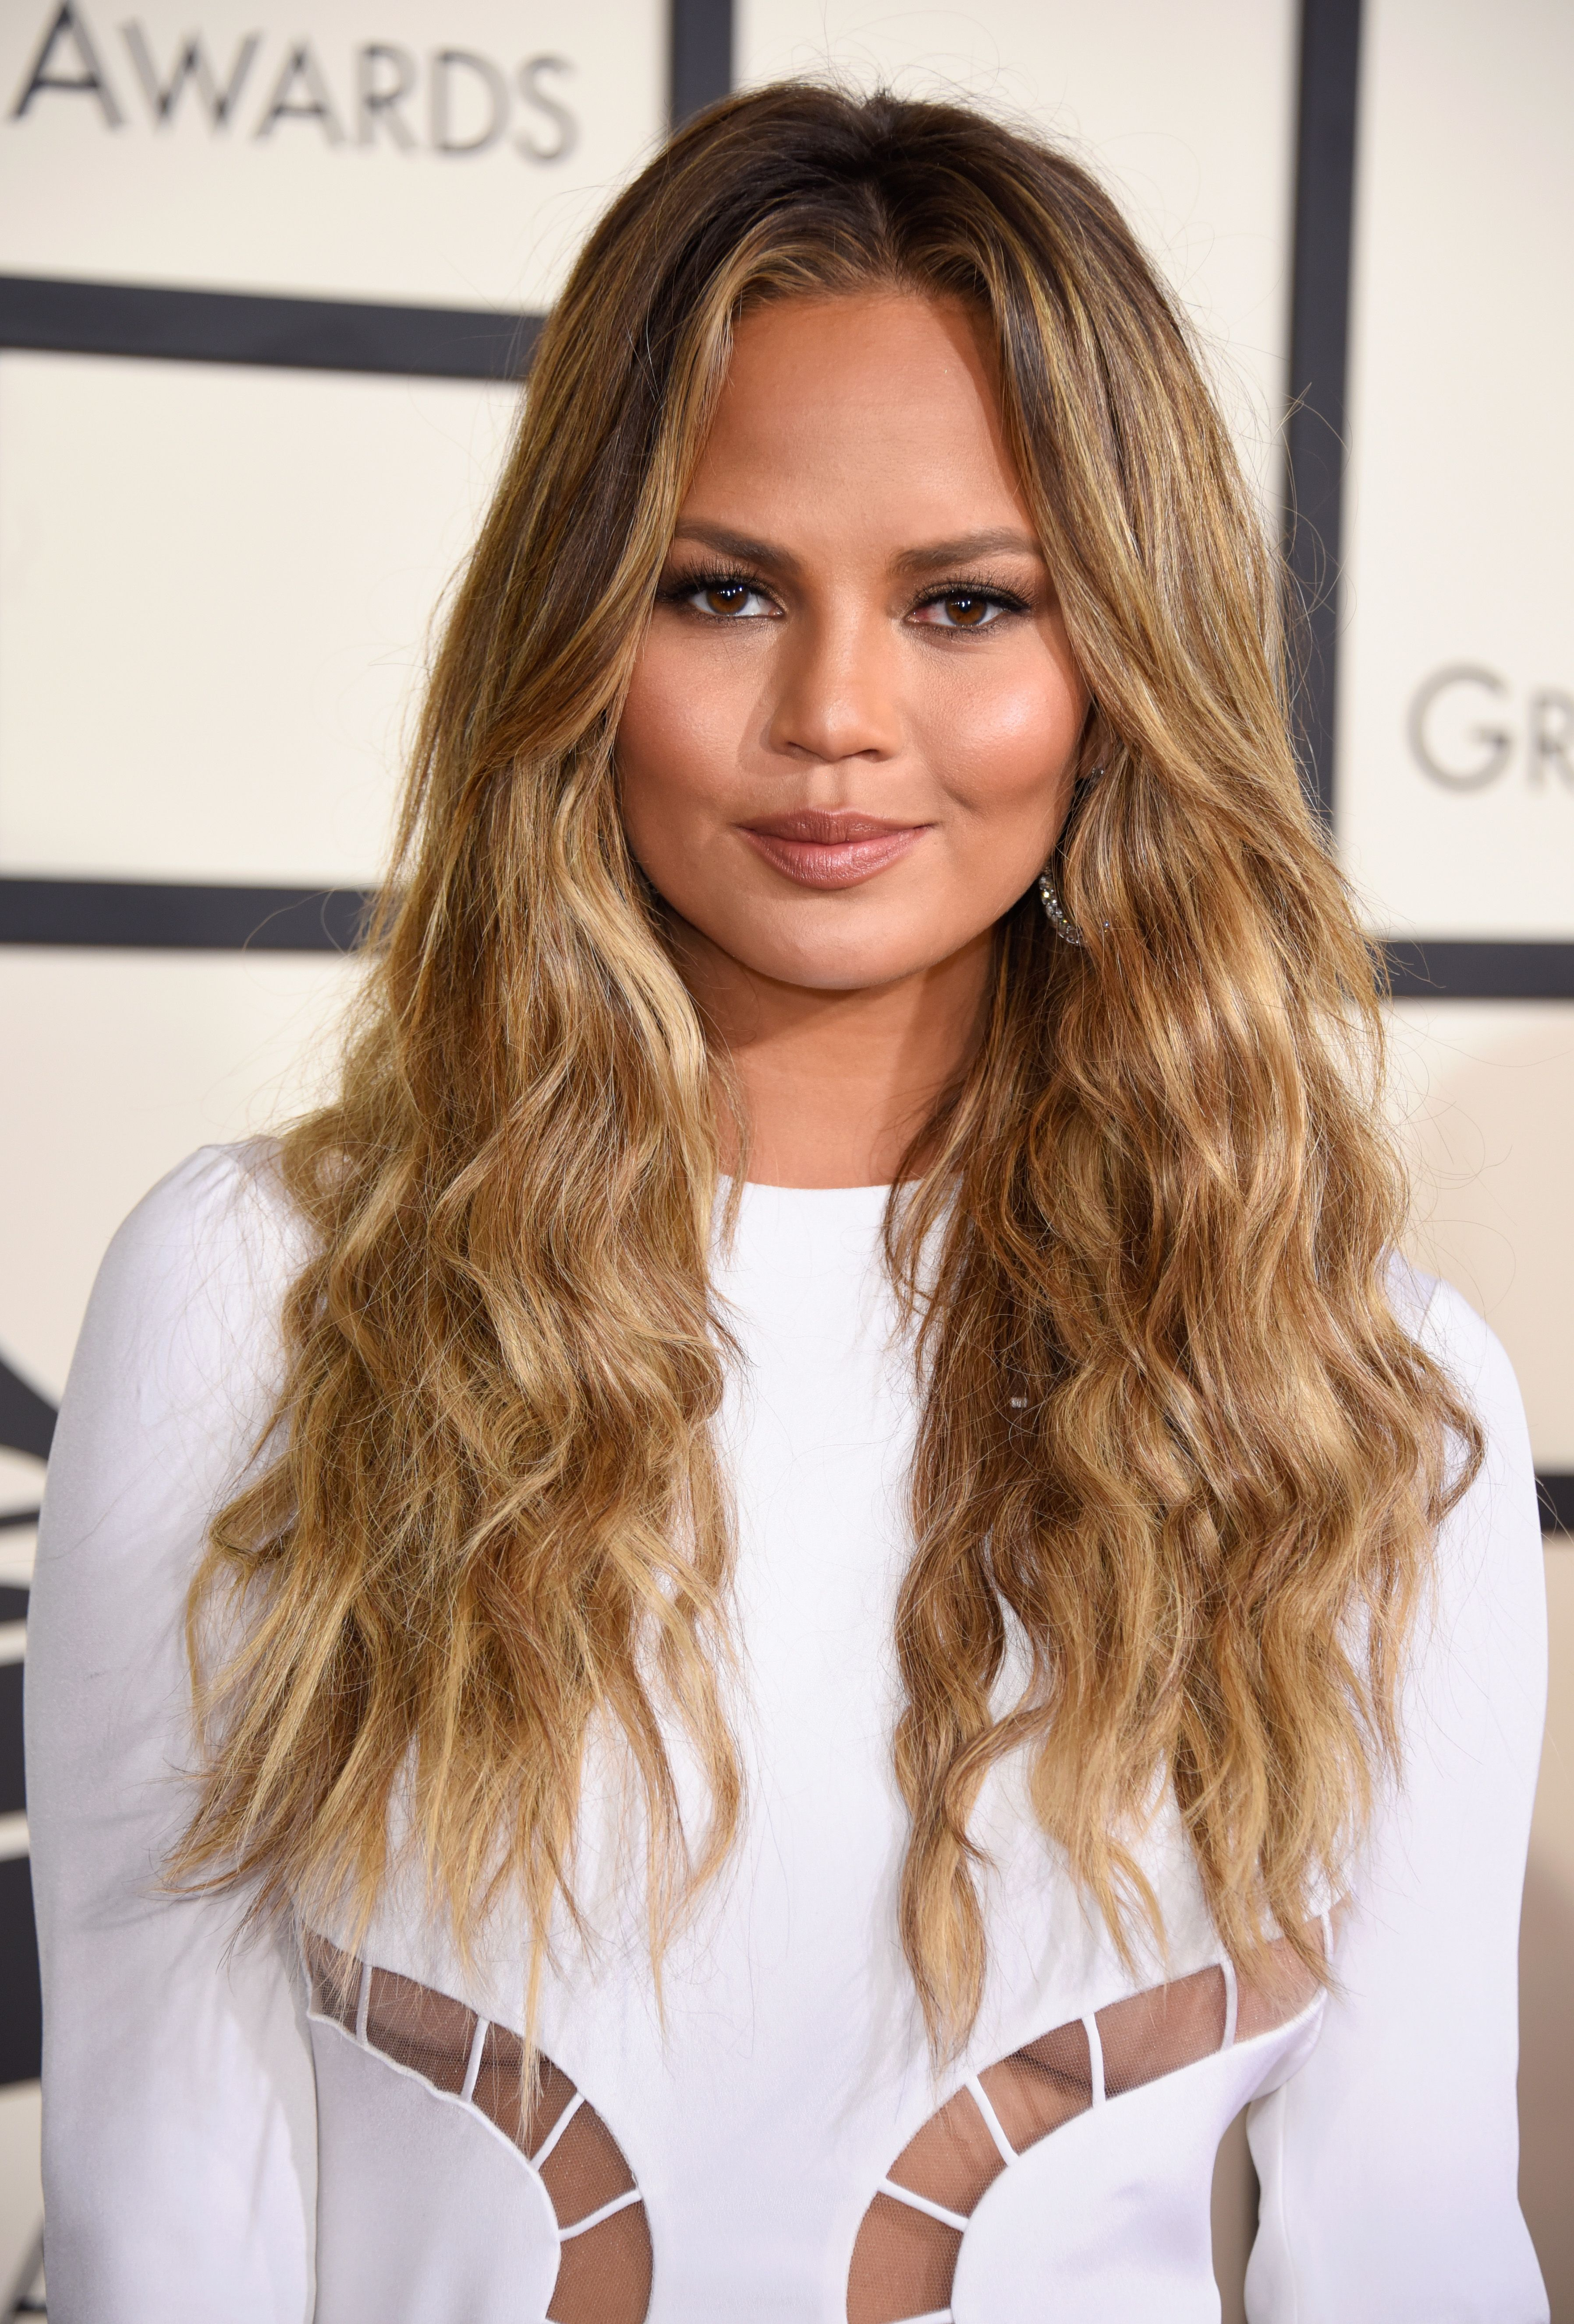 50 Best Hairstyles Of All Time Top Womens Haircuts In History